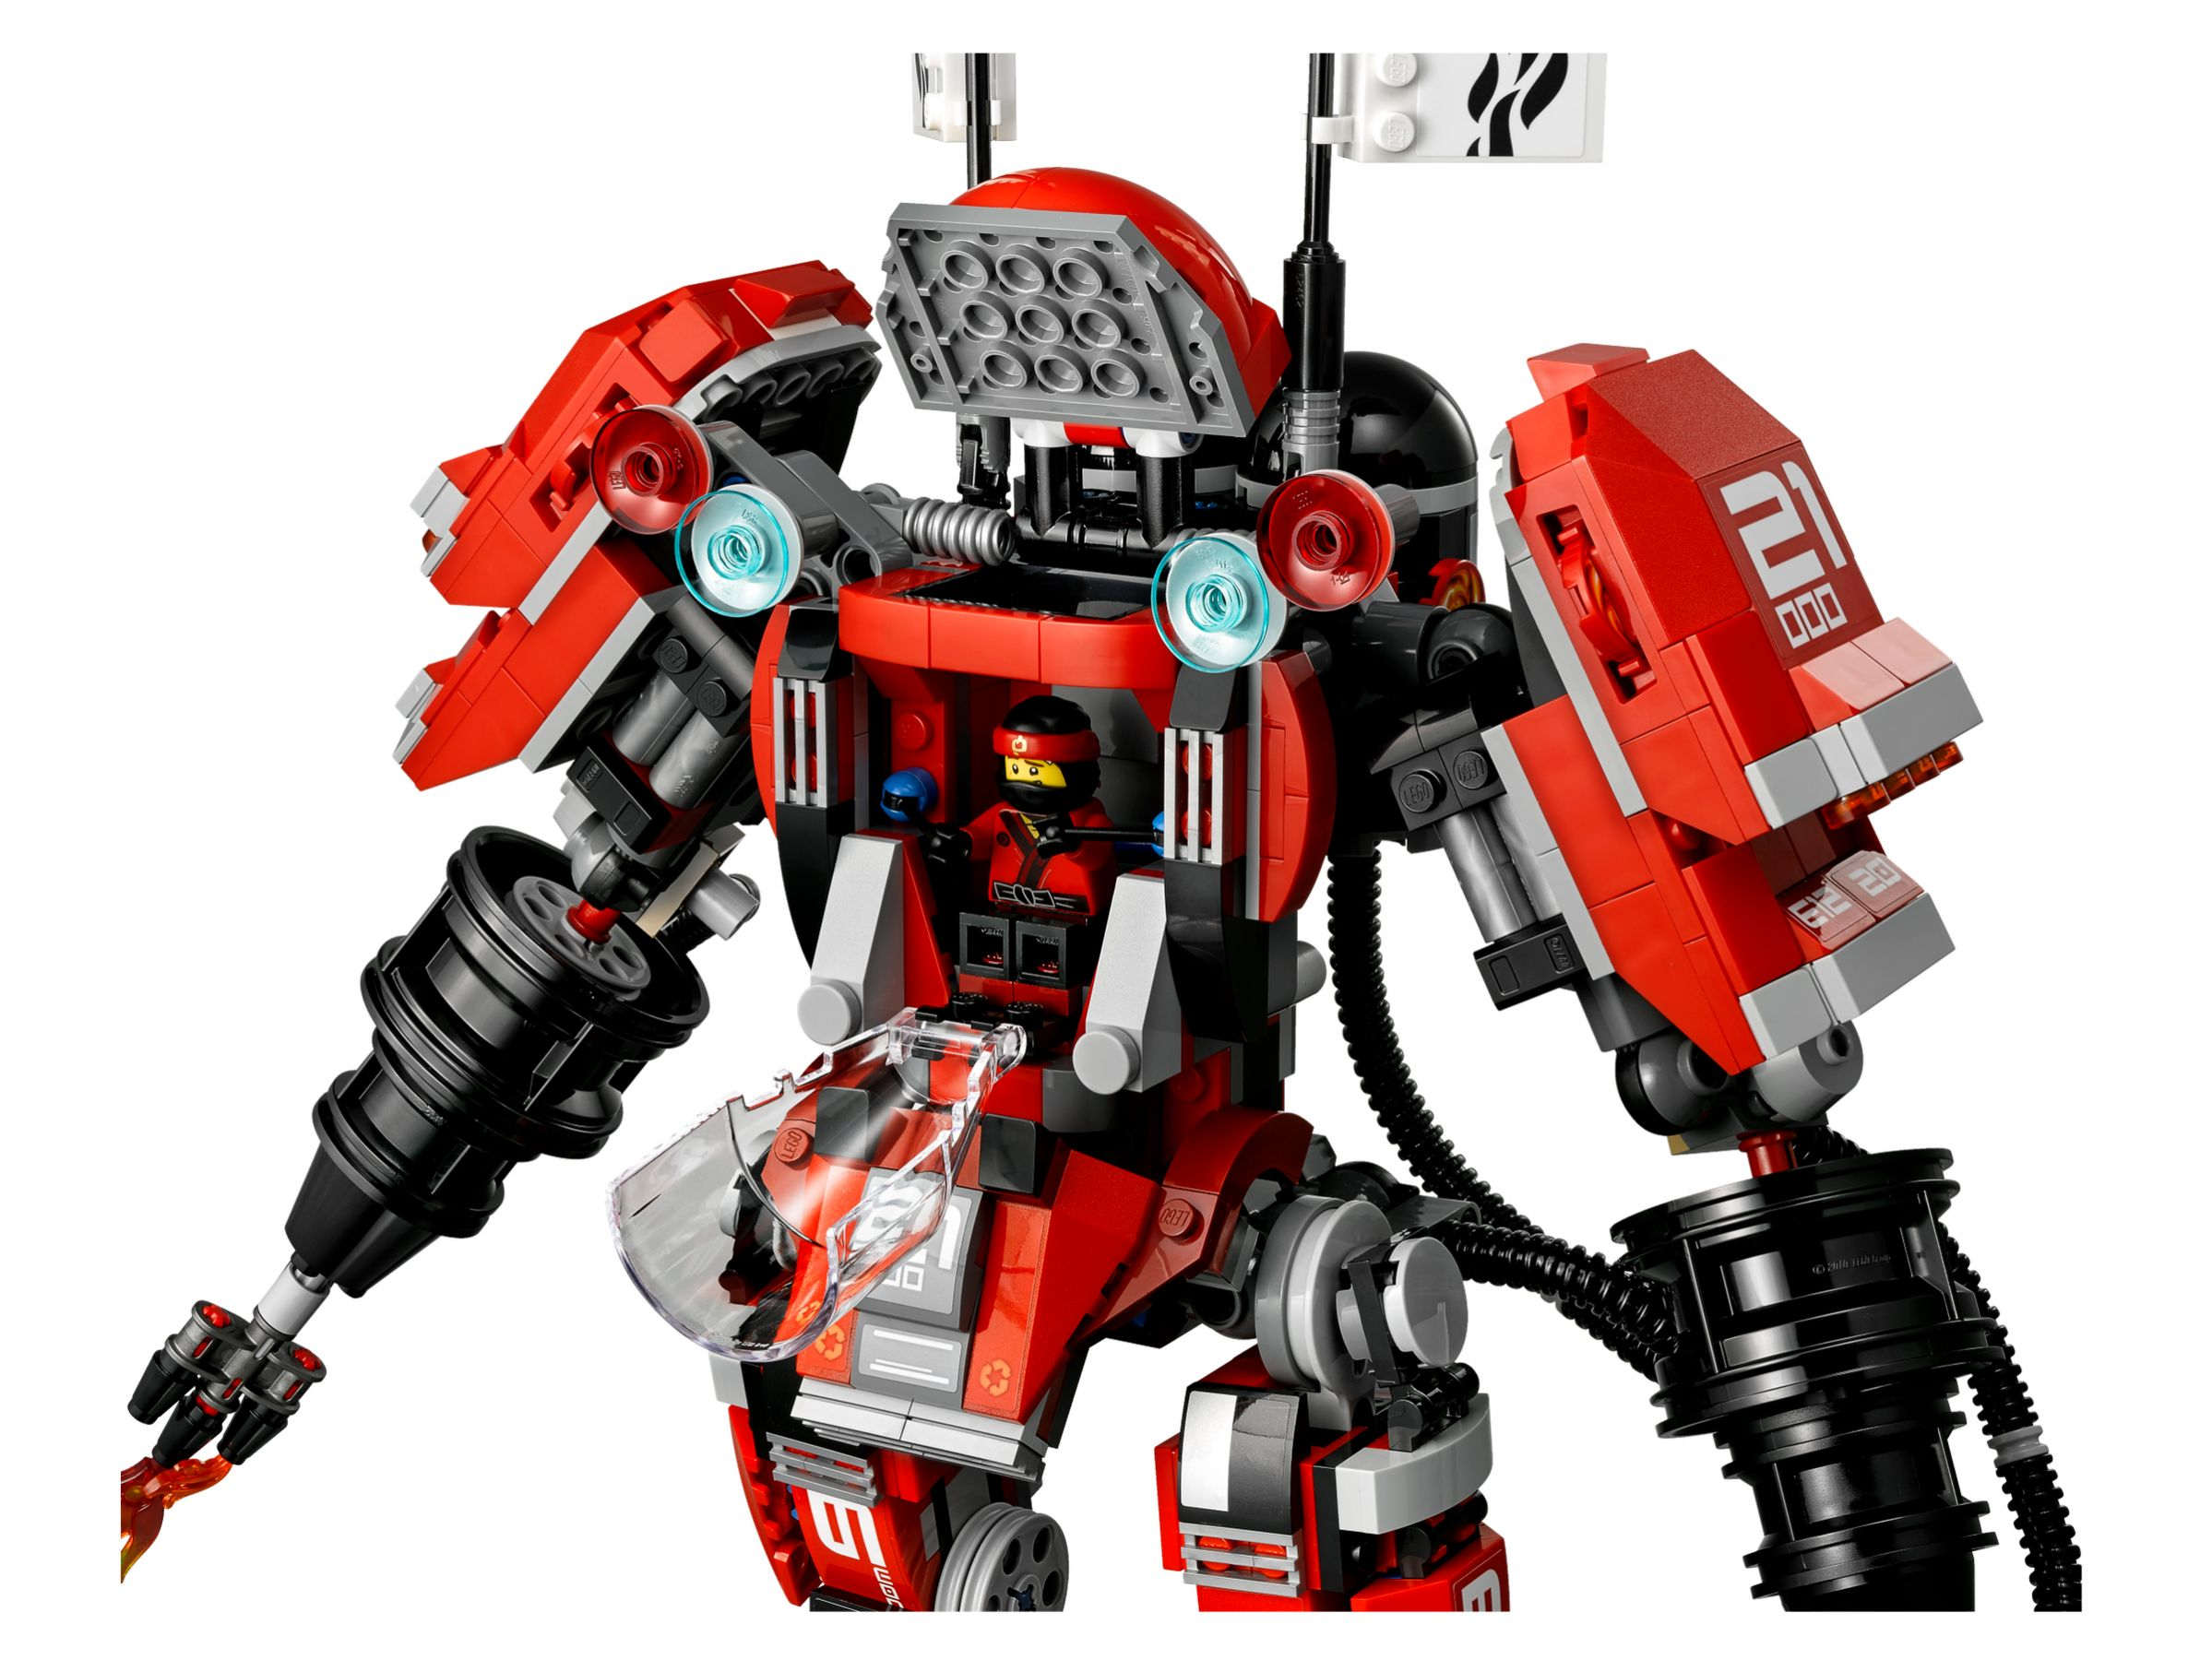 LEGO The LEGO Ninjago Movie 70615 Kai's Feuer-Mech LEGO_70615_alt5.jpg